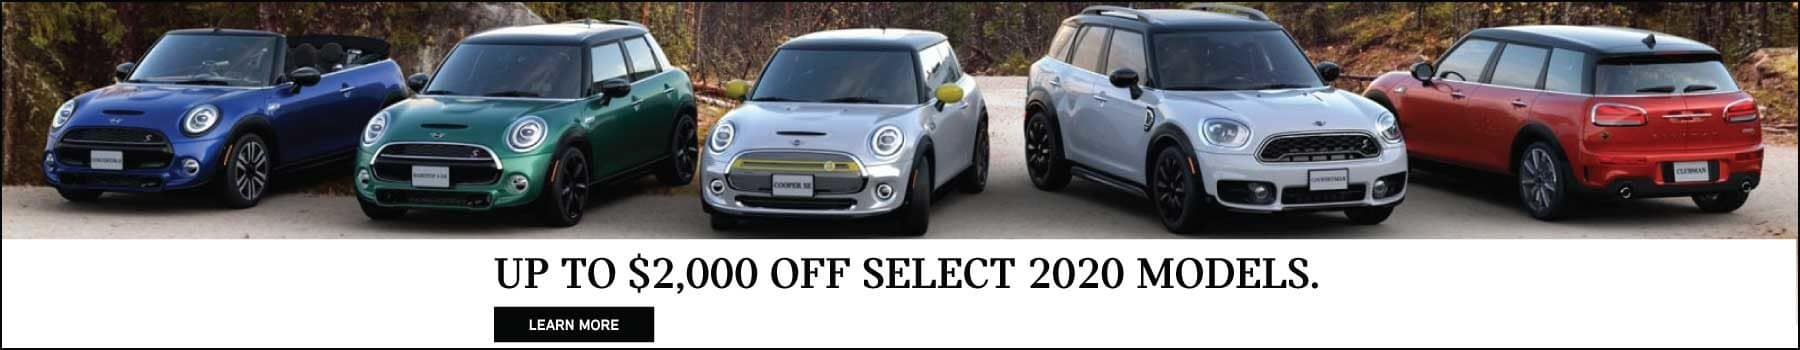 UP TO $2,000 OFF SELECT 2020 MODELS. LEARN MORE BUTTON. SEE DEALER FOR COMPLETE DETAILS.